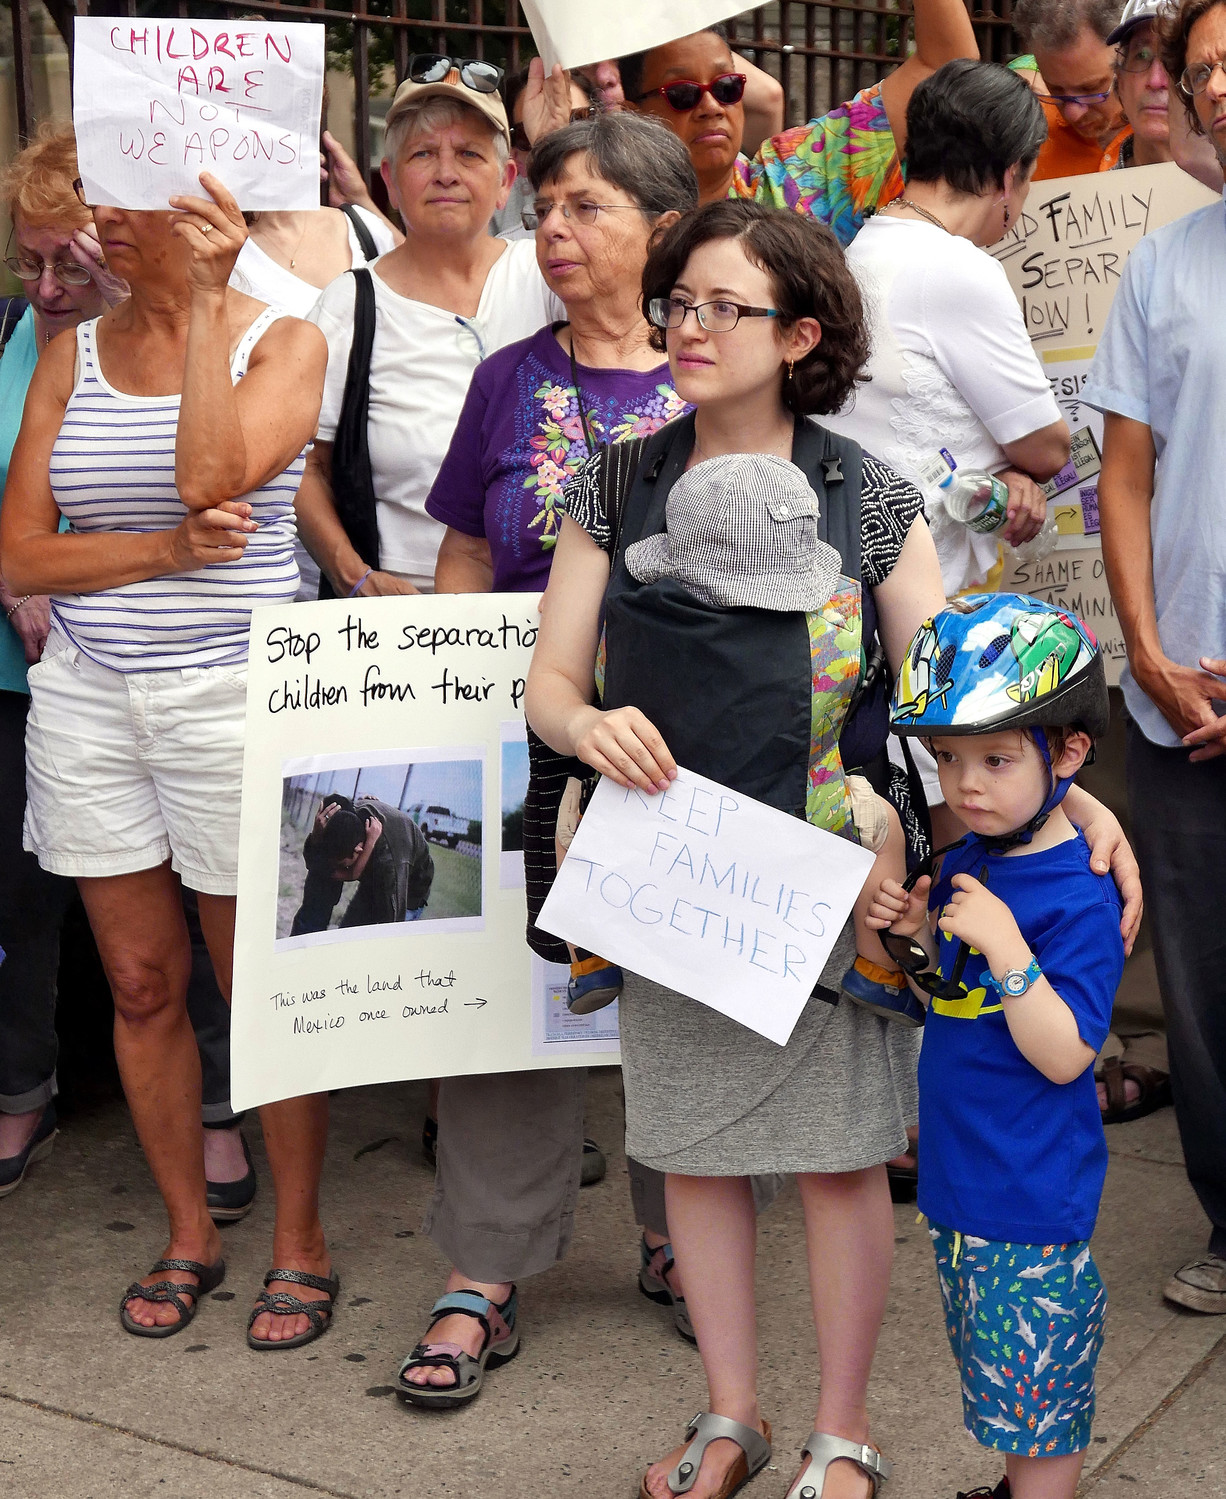 "Arielle Rubenstern and her children, Raphael, 4, and Elijah, 1, participated in a vigil in the Bronx June 18 calling for an end to the separation of children from their parents at the U.S. border with Mexico. The event was co-sponsored by the Sisters of Charity of New York and North Bronx Racial Justice. ""As women religious, as Christians, it is our moral duty to speak for the children who are being separated from their parents. This policy is devastating and dangerous on countless levels and it must end,"" said Sister Jane Iannucelli, S.C., president of the Sisters of Charity."